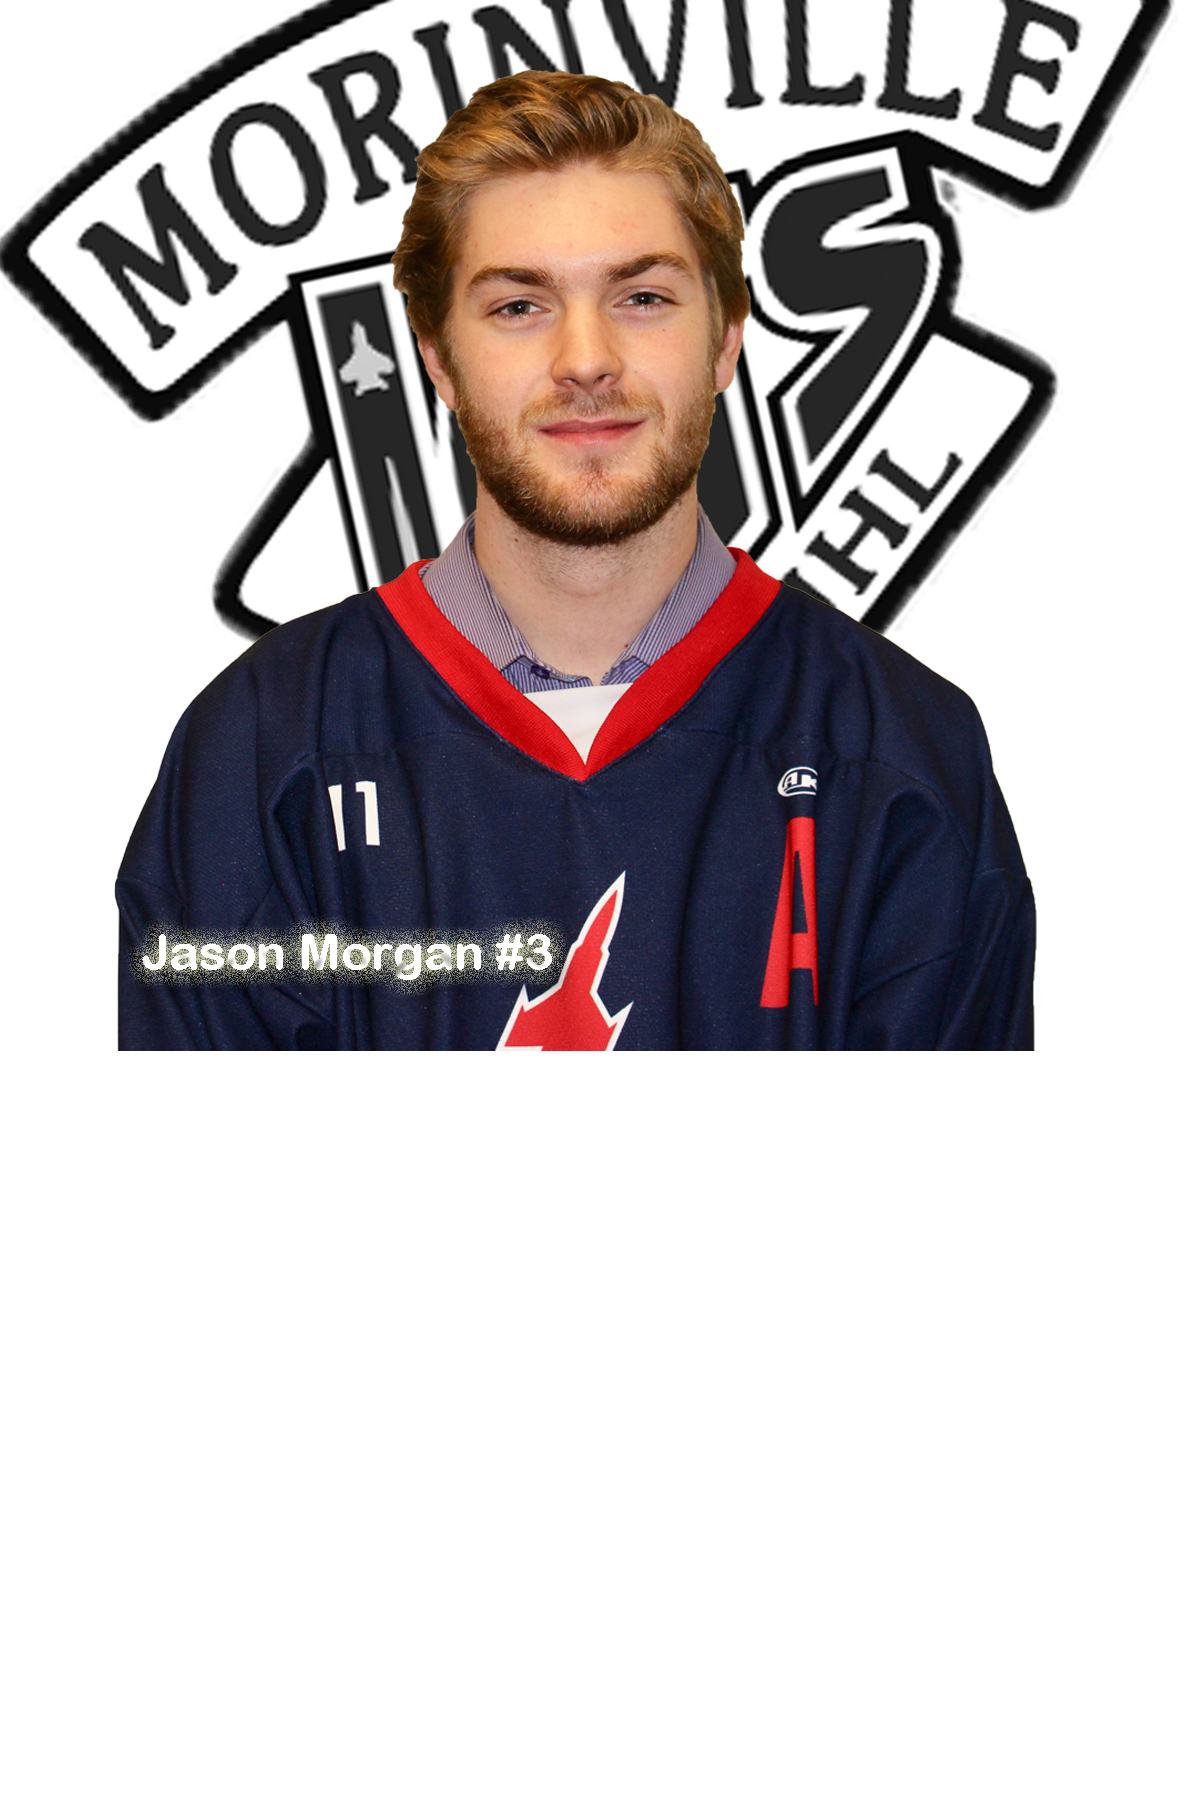 #3 Jason Morgan